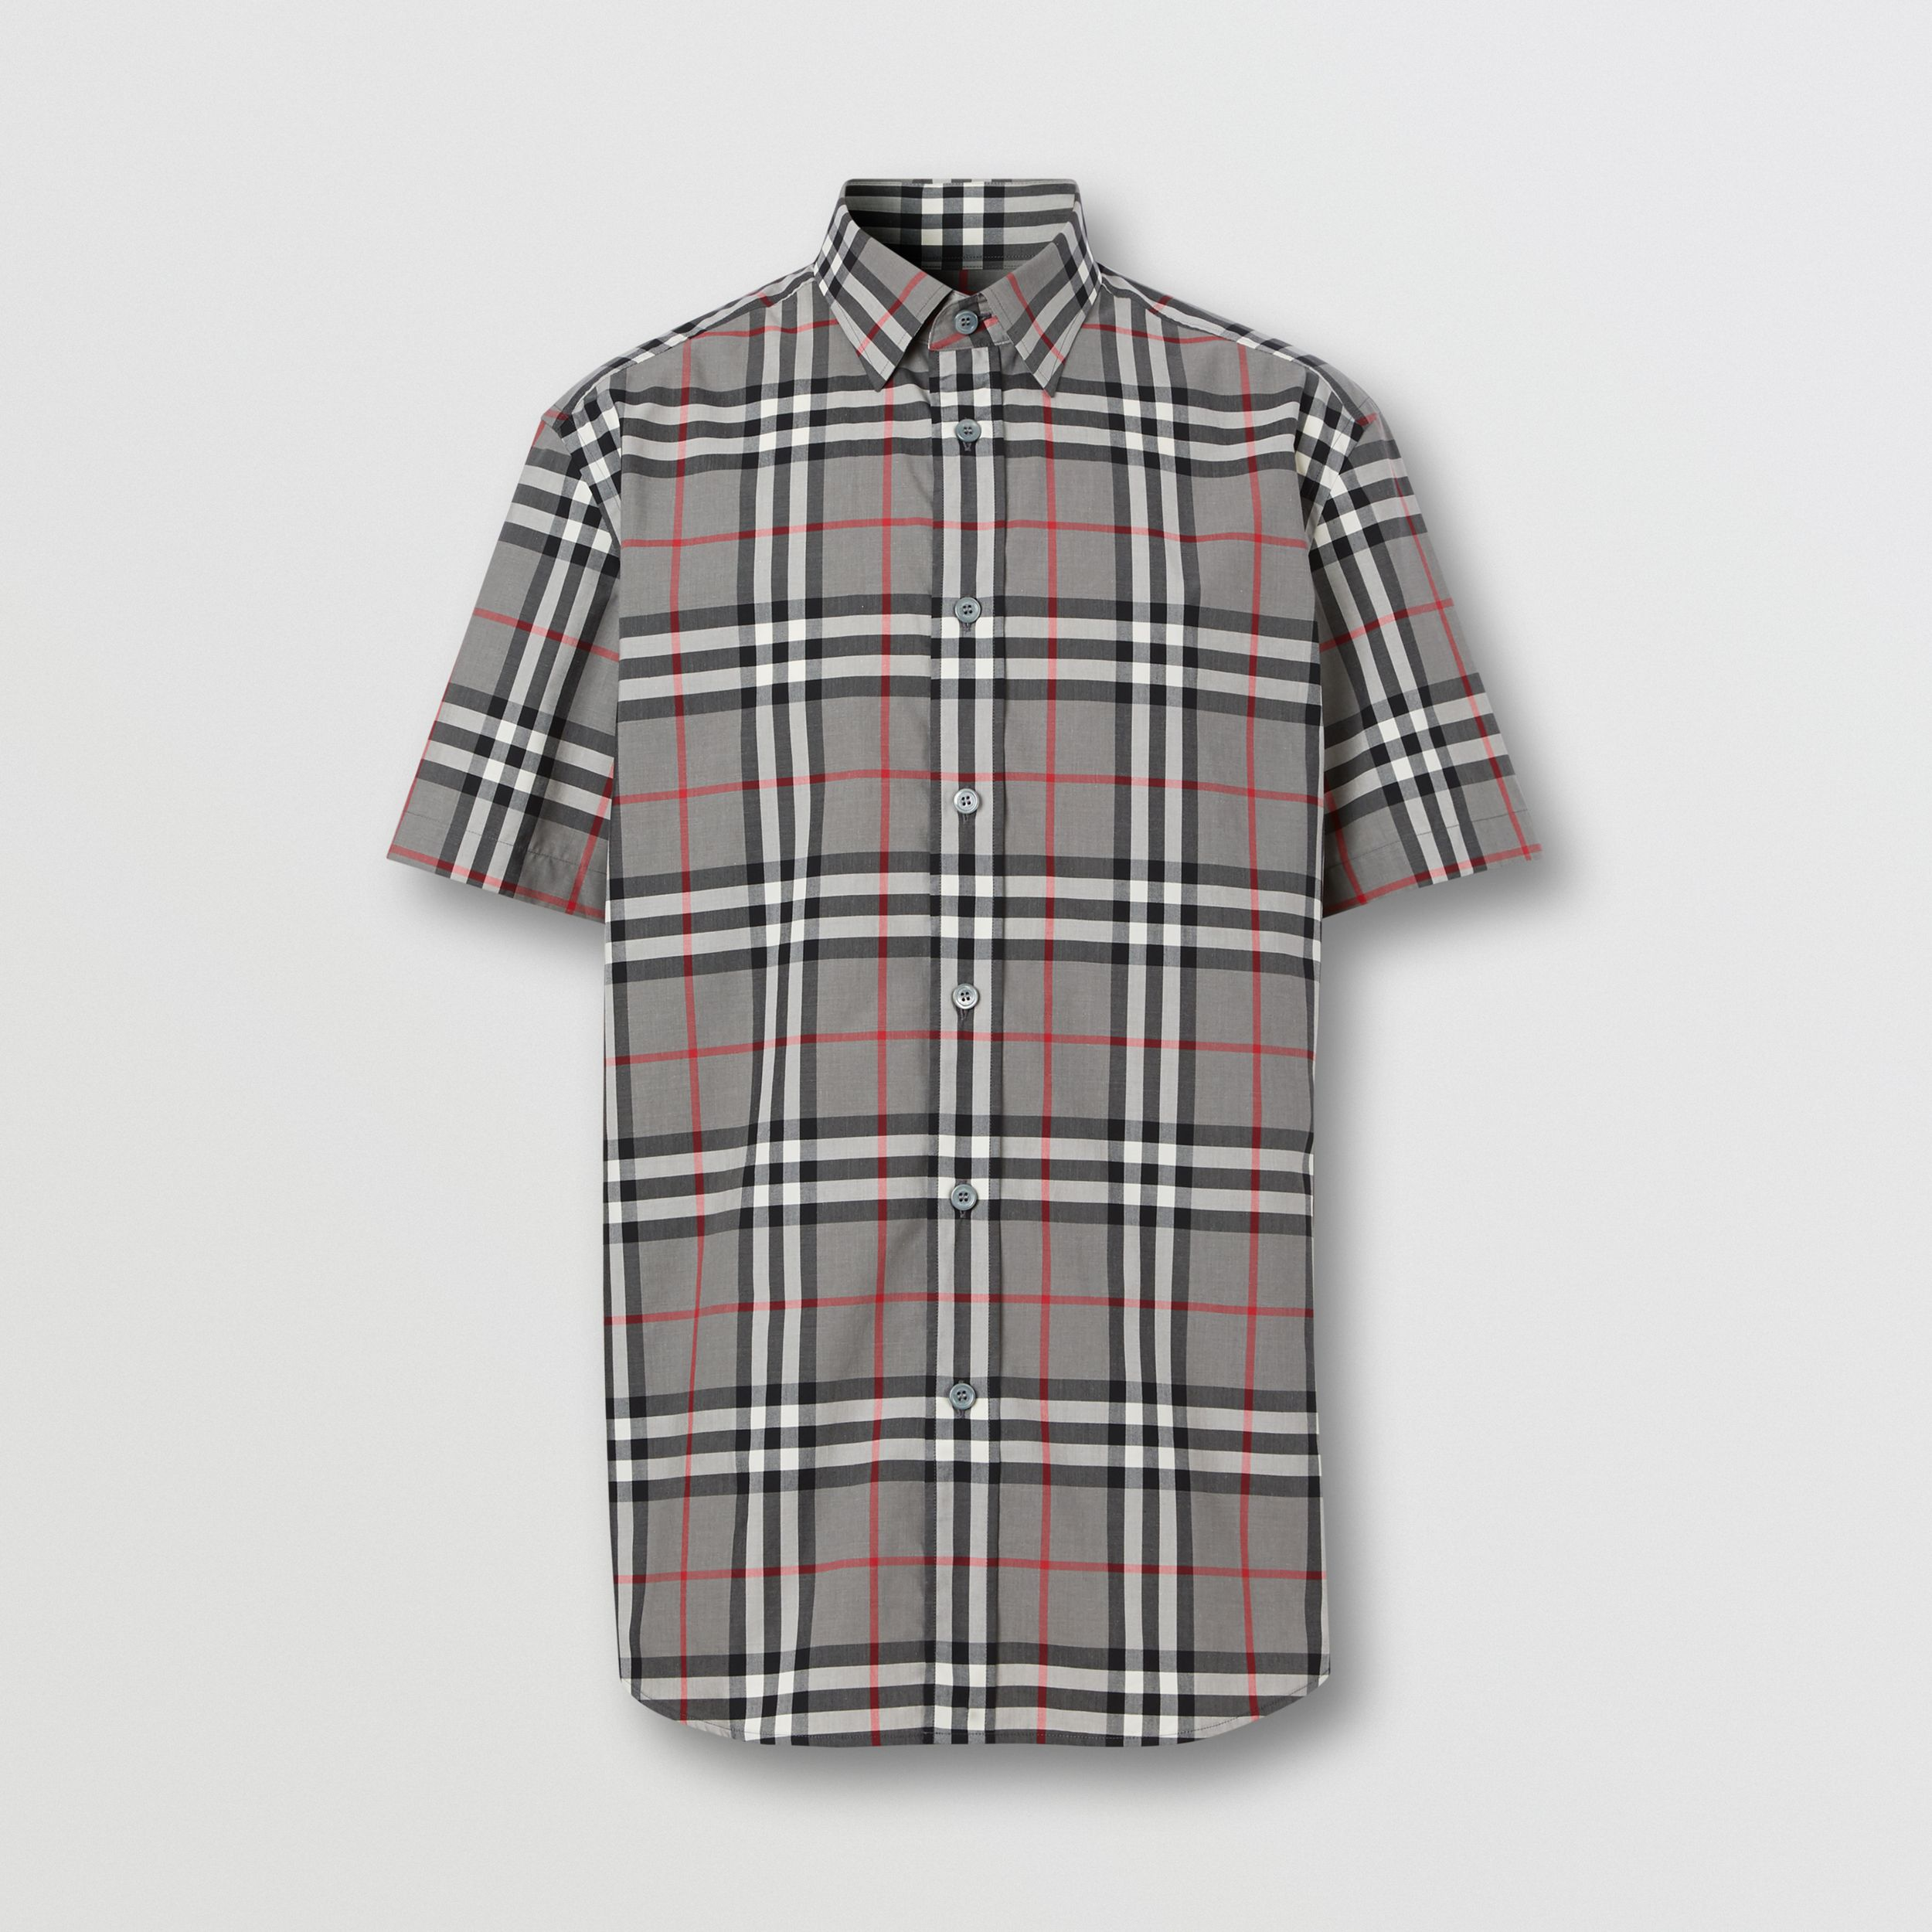 Short-sleeve Check Cotton Poplin Shirt in Storm Grey Melange - Men | Burberry - 4